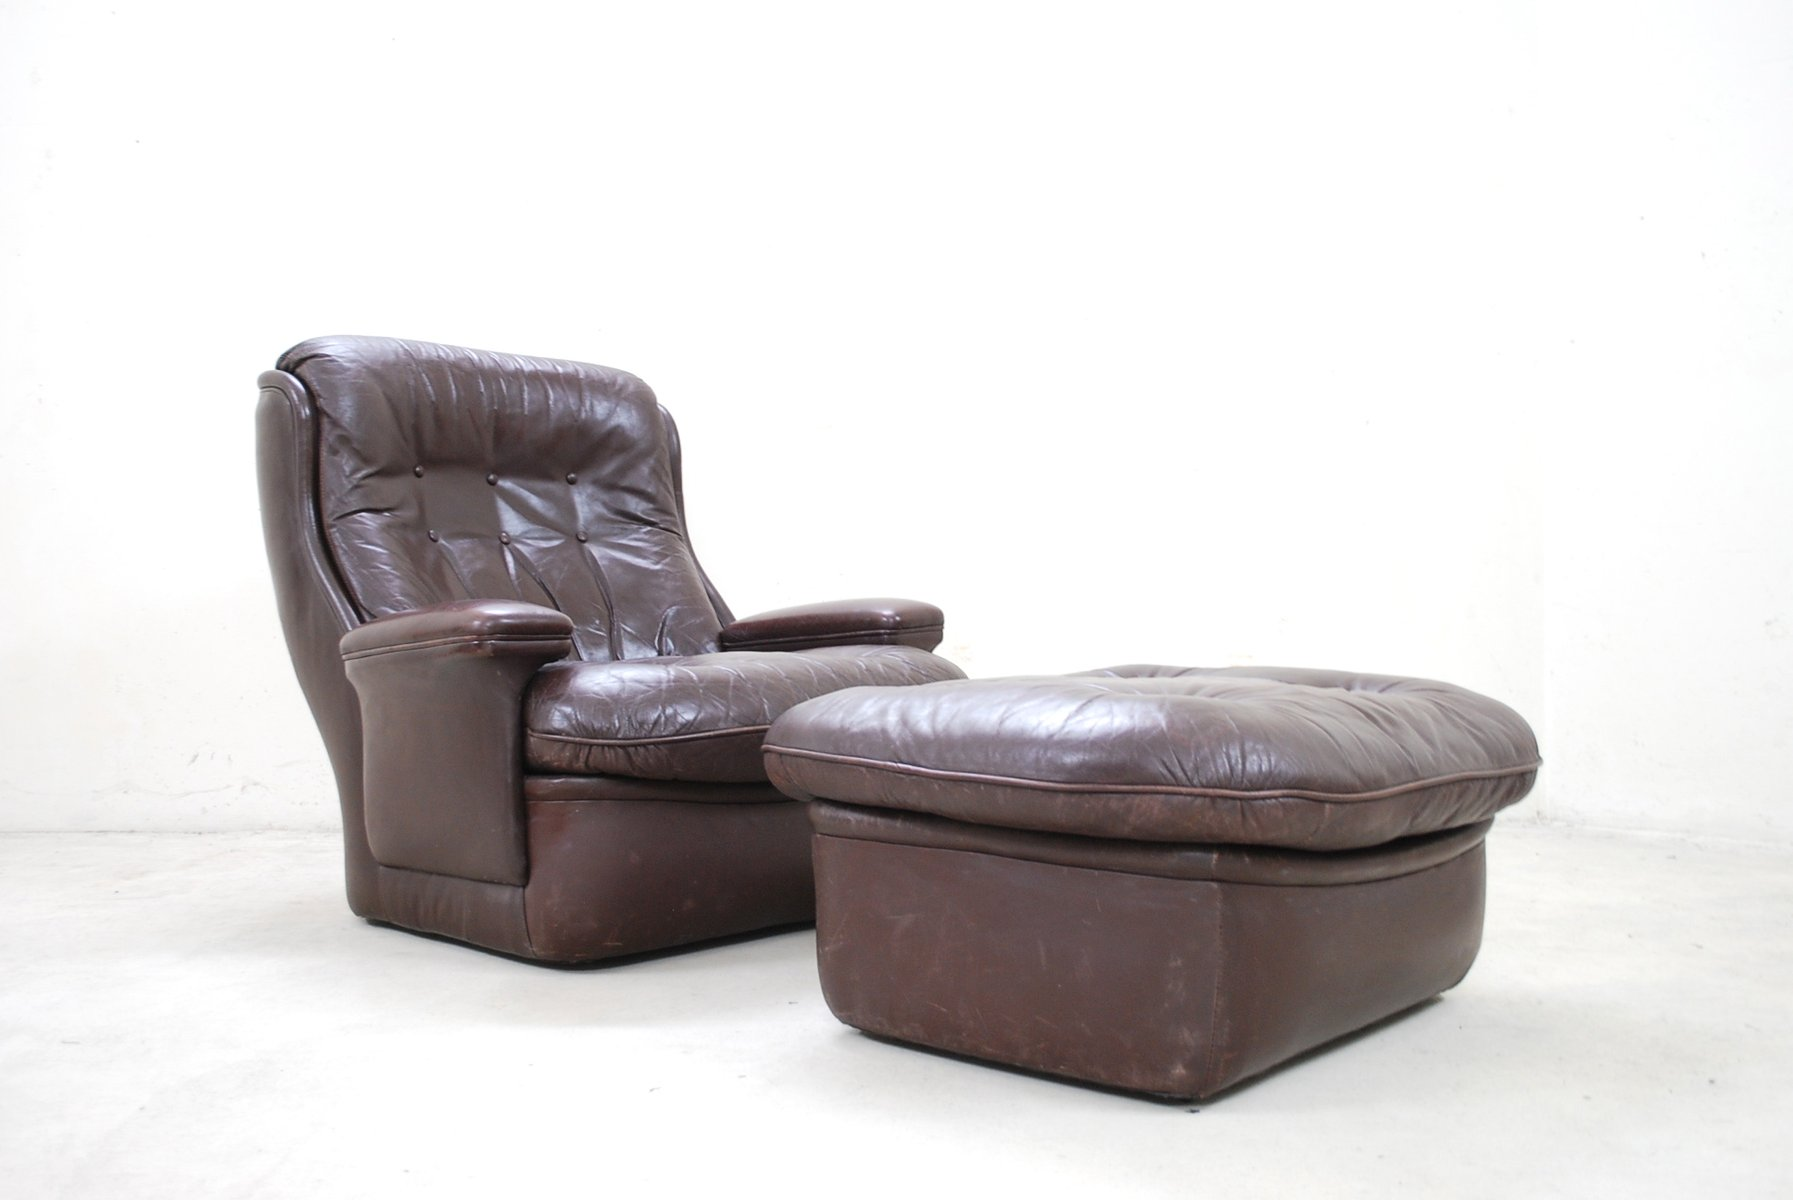 vintage brown leather lounge chair and ottoman from terstappen for